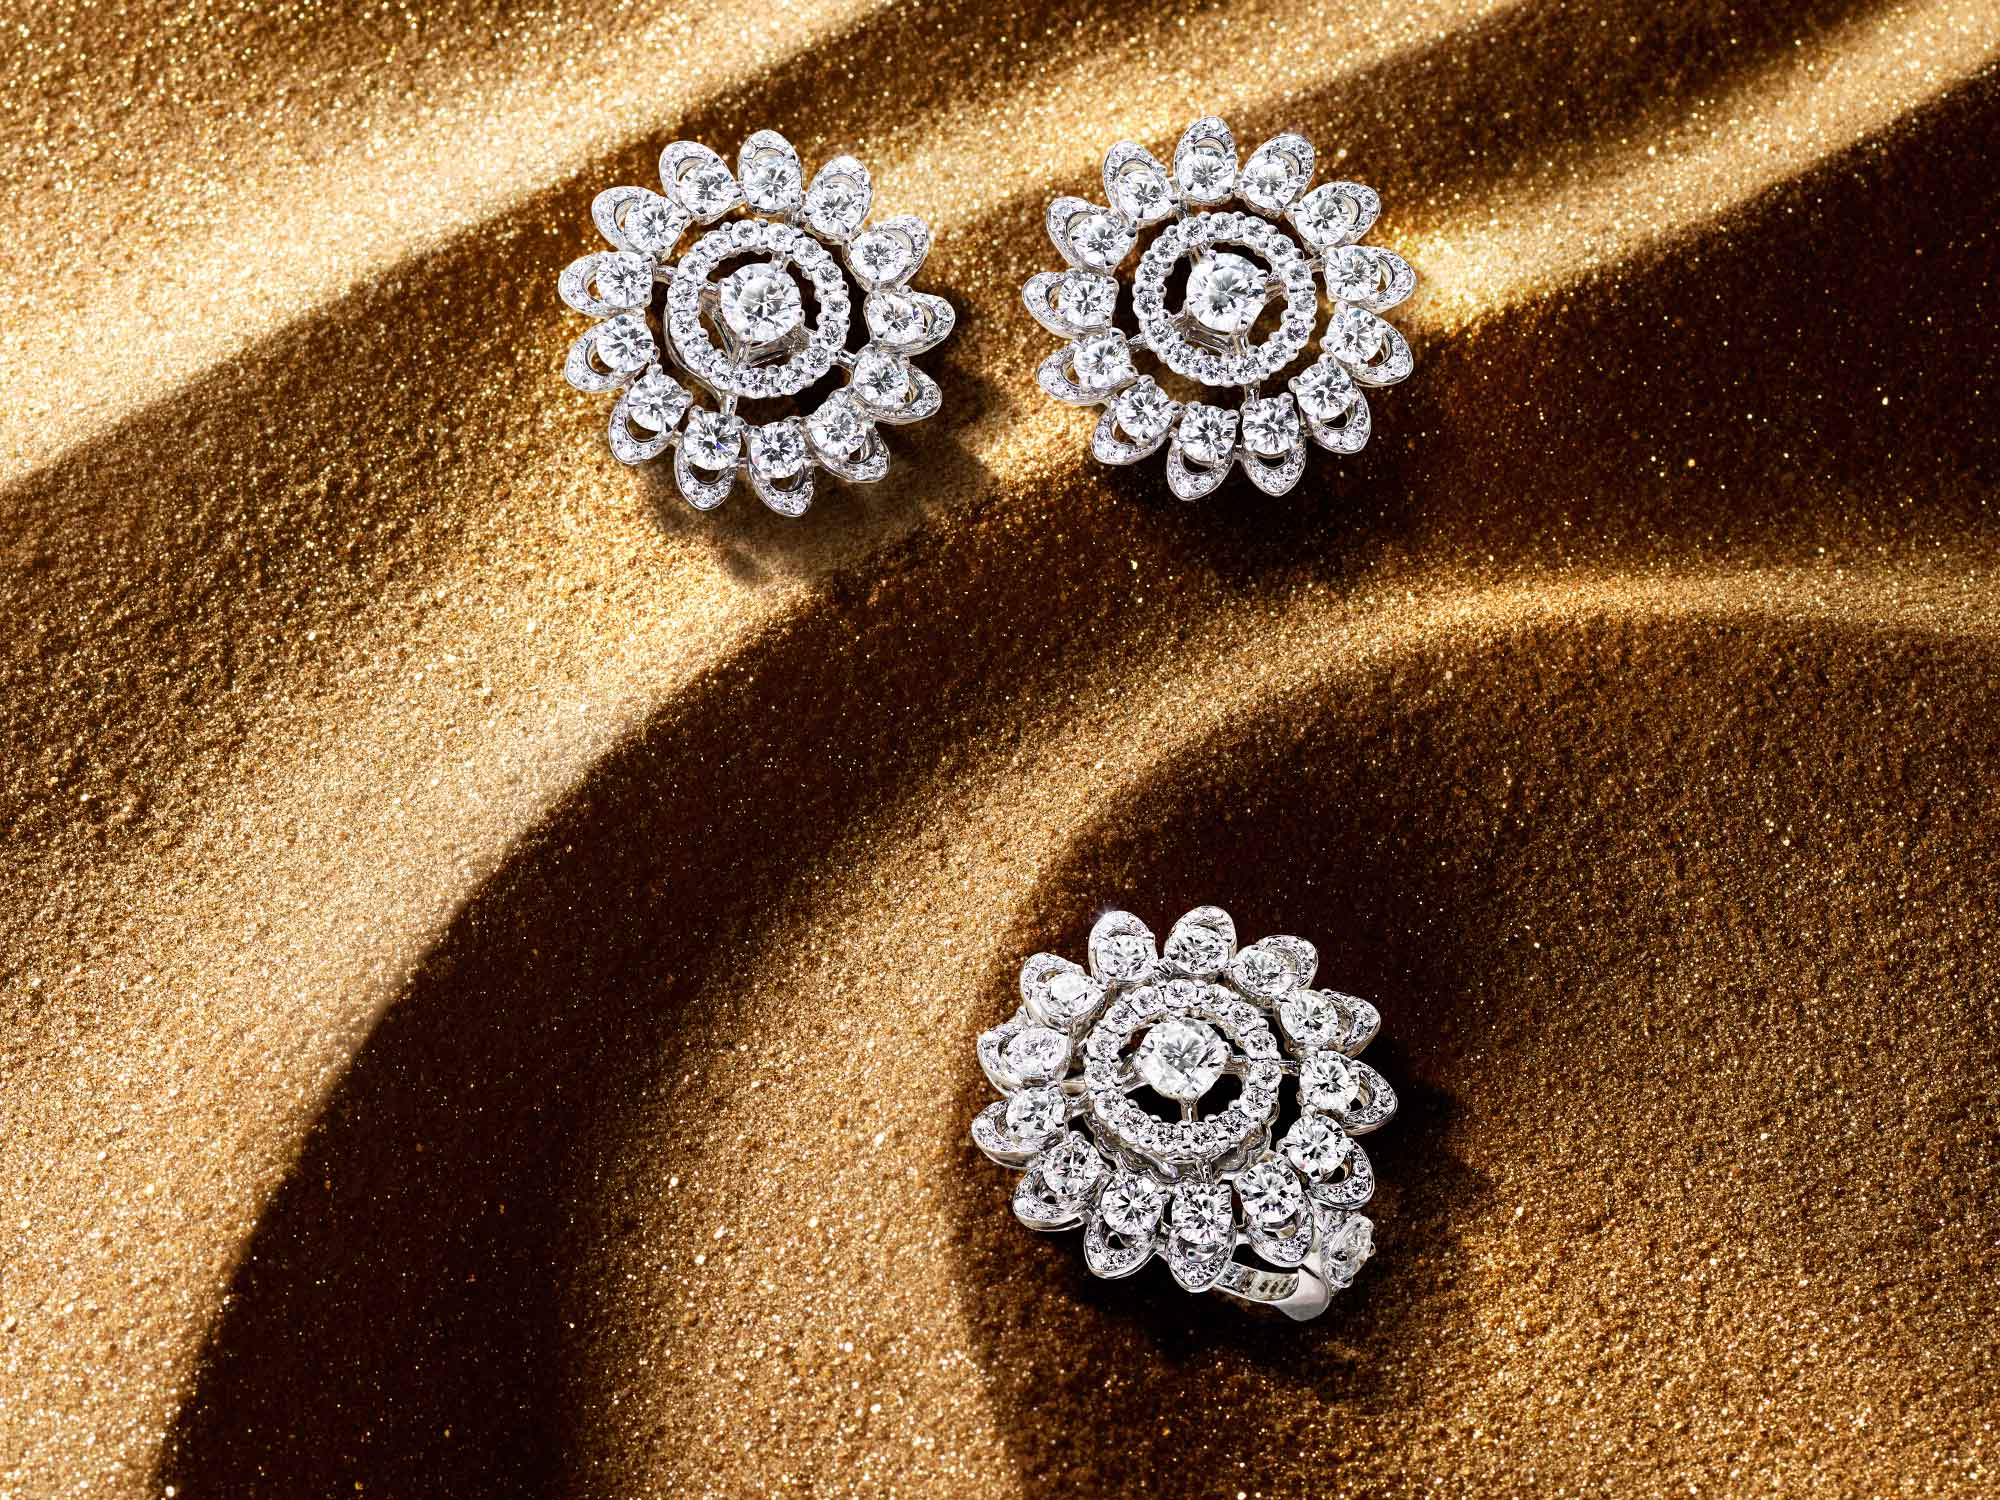 The Graff Gateway diamond earrings and ring from the Tribal jewellery collection, on sand